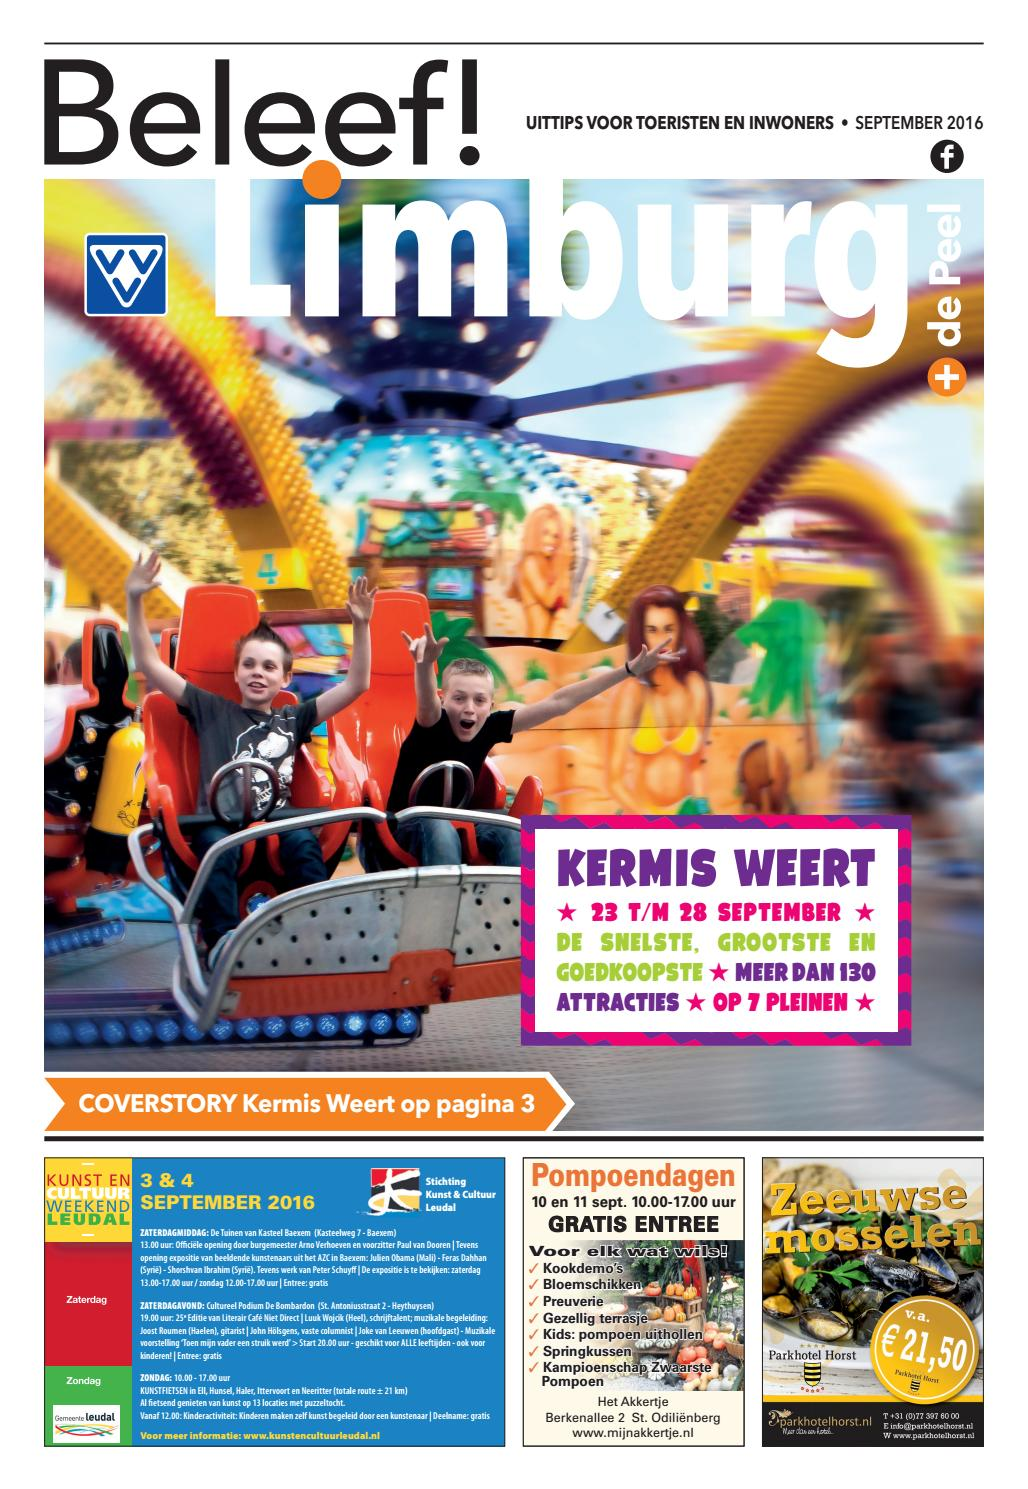 Zwembad Maaseik Entree Beleef Limburg De Peel September 2016 By Vinda Media Issuu